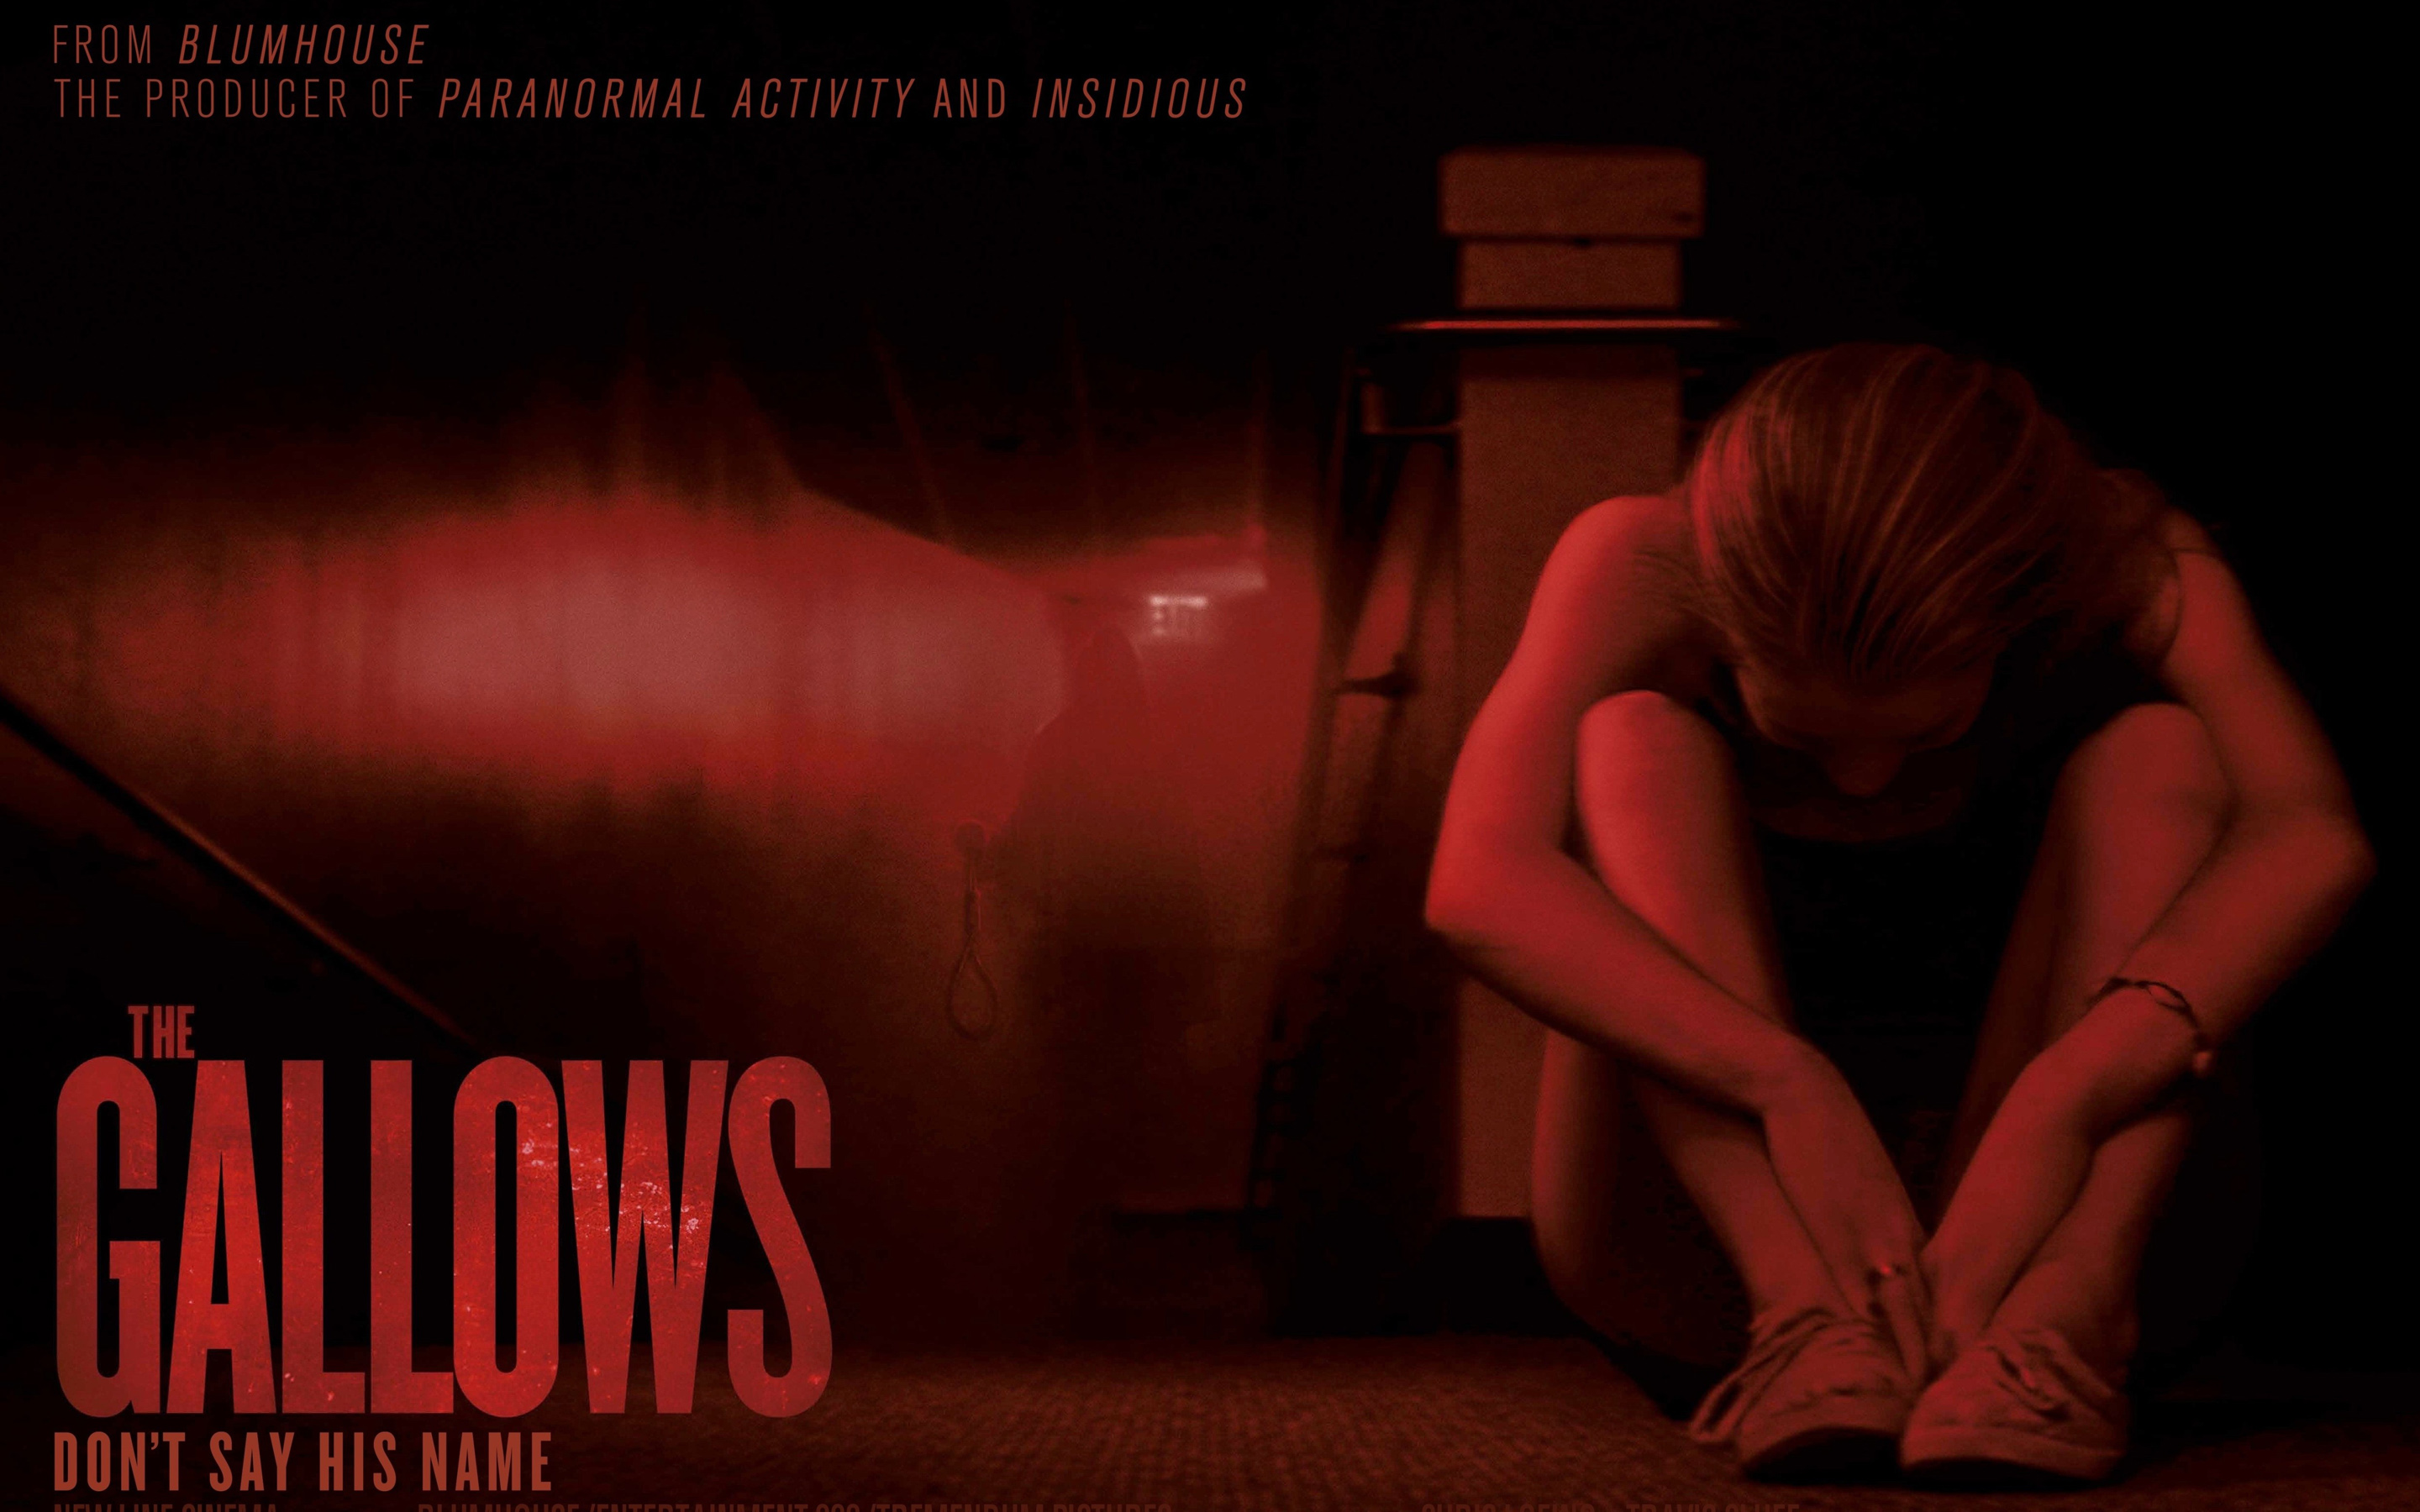 The-Gallows-2015-Horror-Movie-Poster-HD-Wallpaper